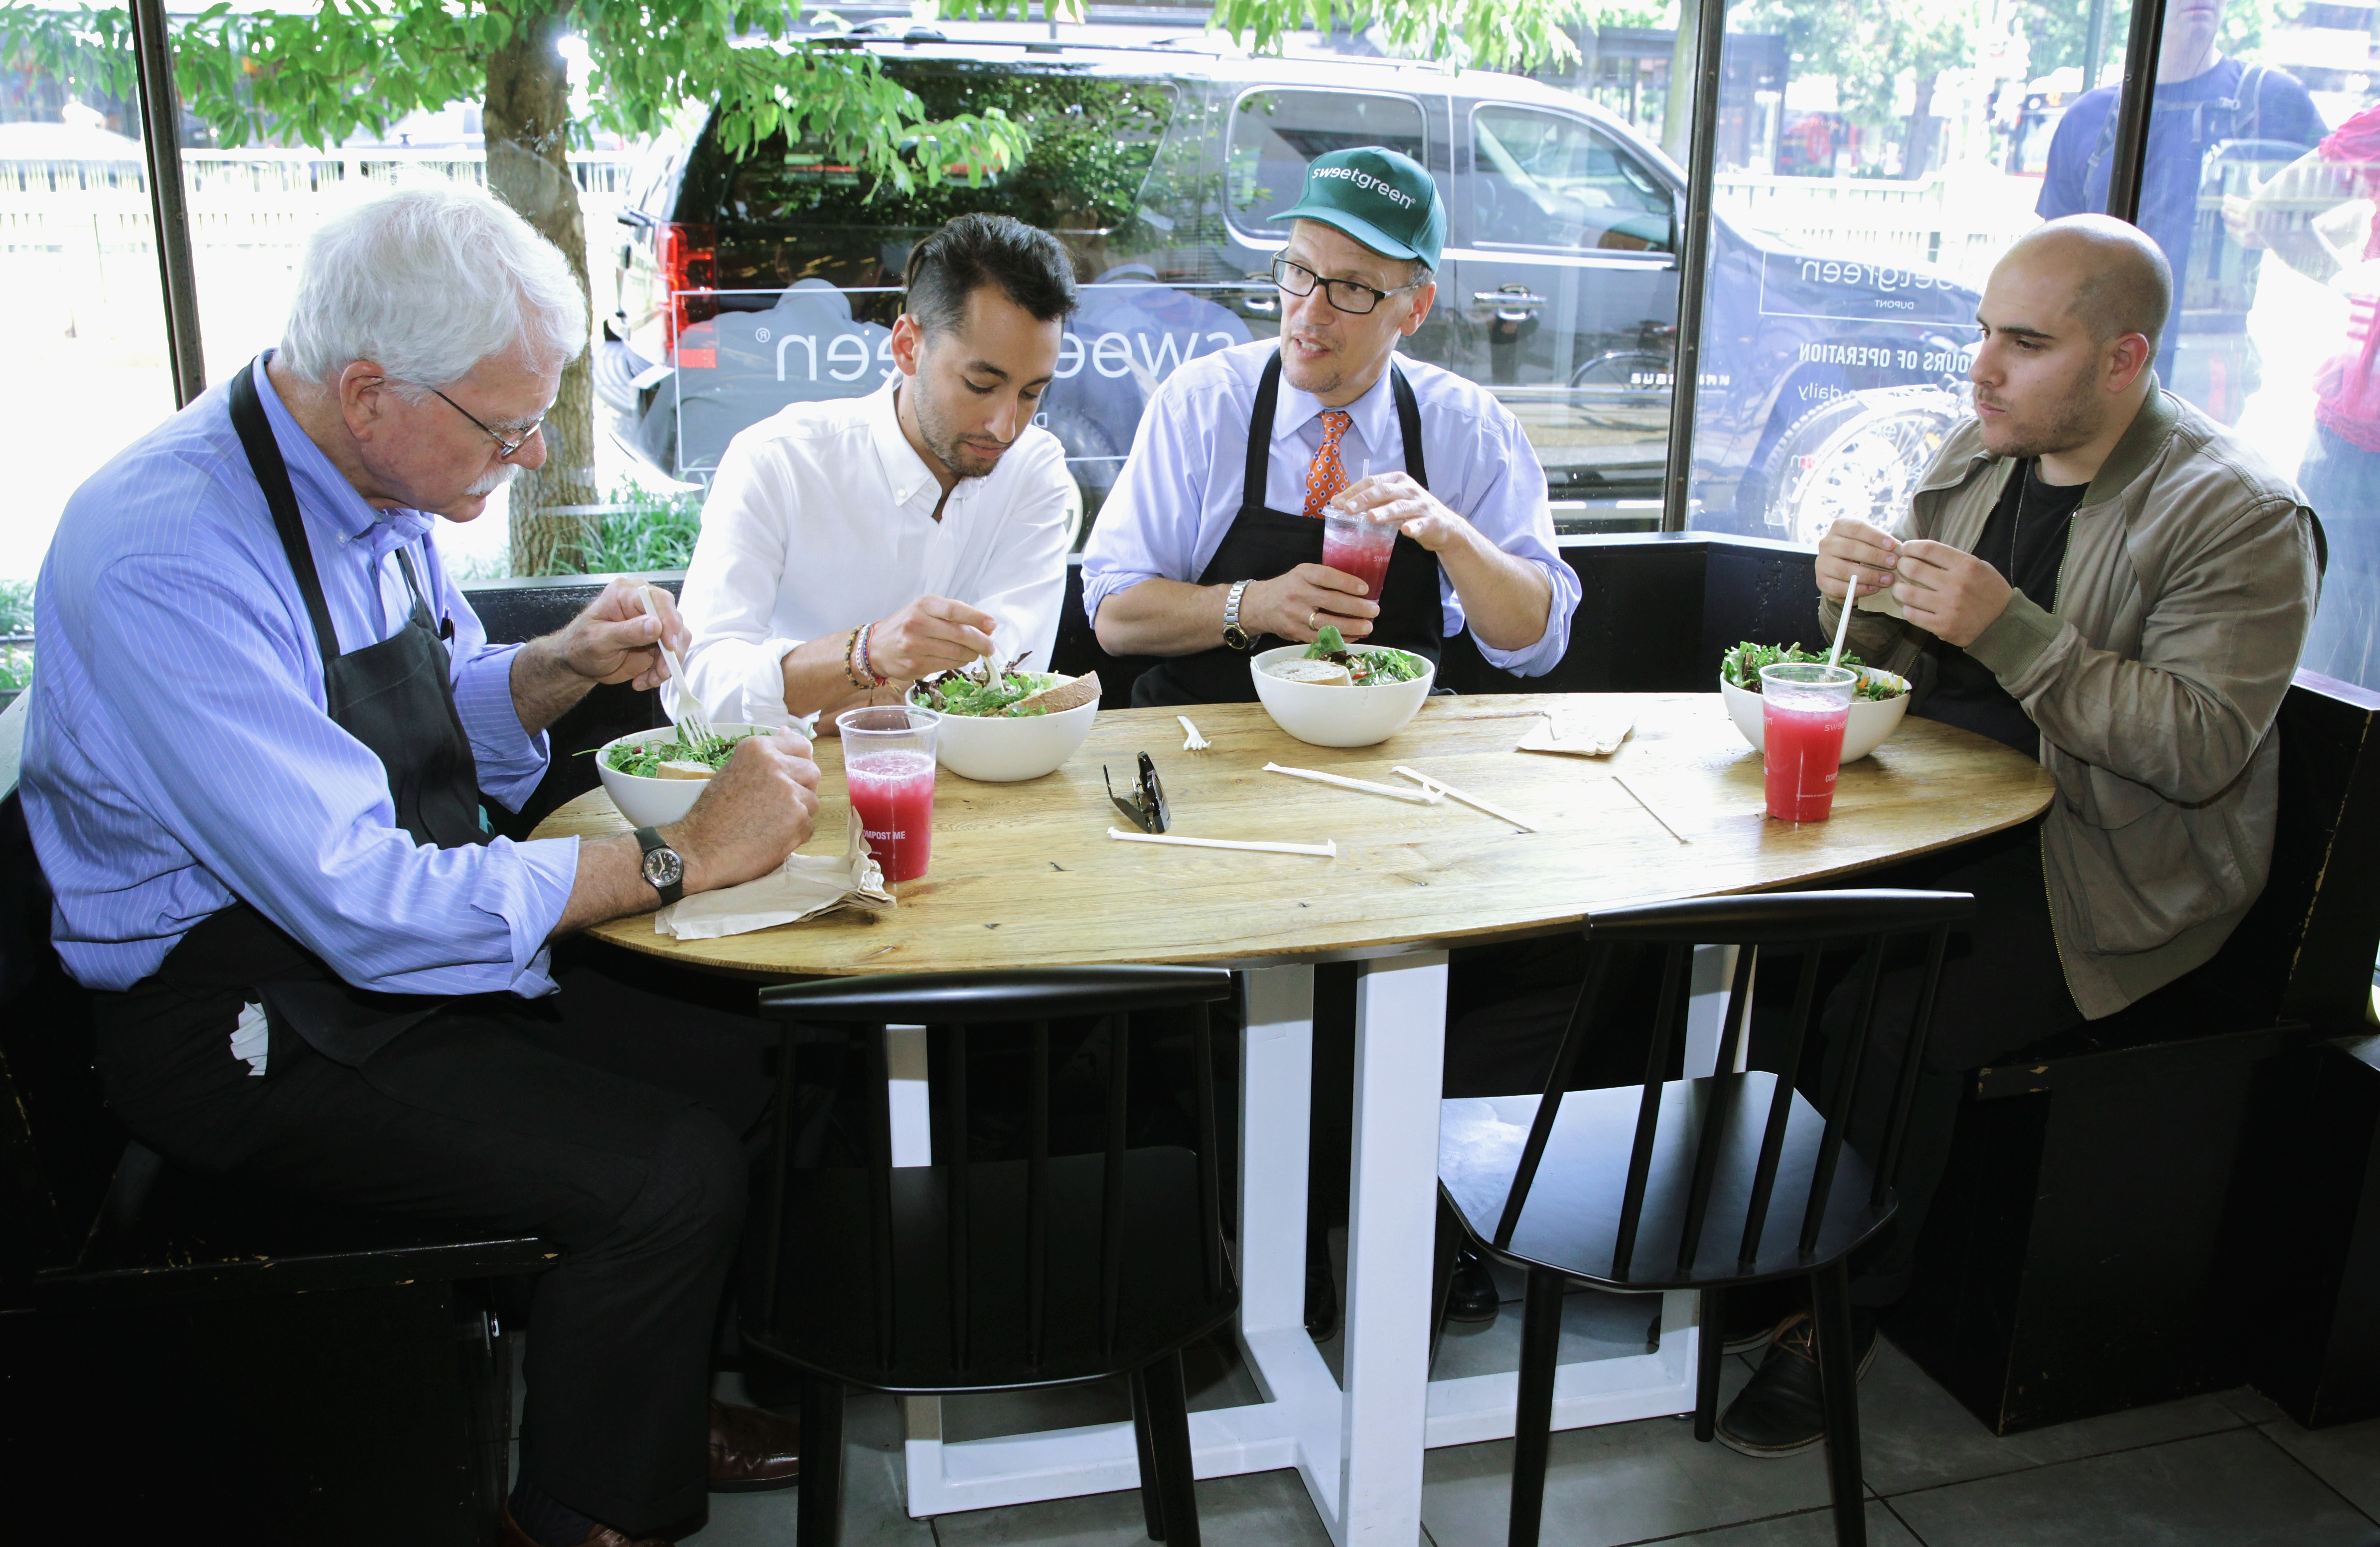 Left to right: Representative George Miller, D-Calif.; Sweetgreen co-founder Jonathan Neman; Labor Secretary Thomas Perez and Sweetgreen co-founder Nicolas Jammet sit at a table in a Sweetgreen restaurant eating salad.